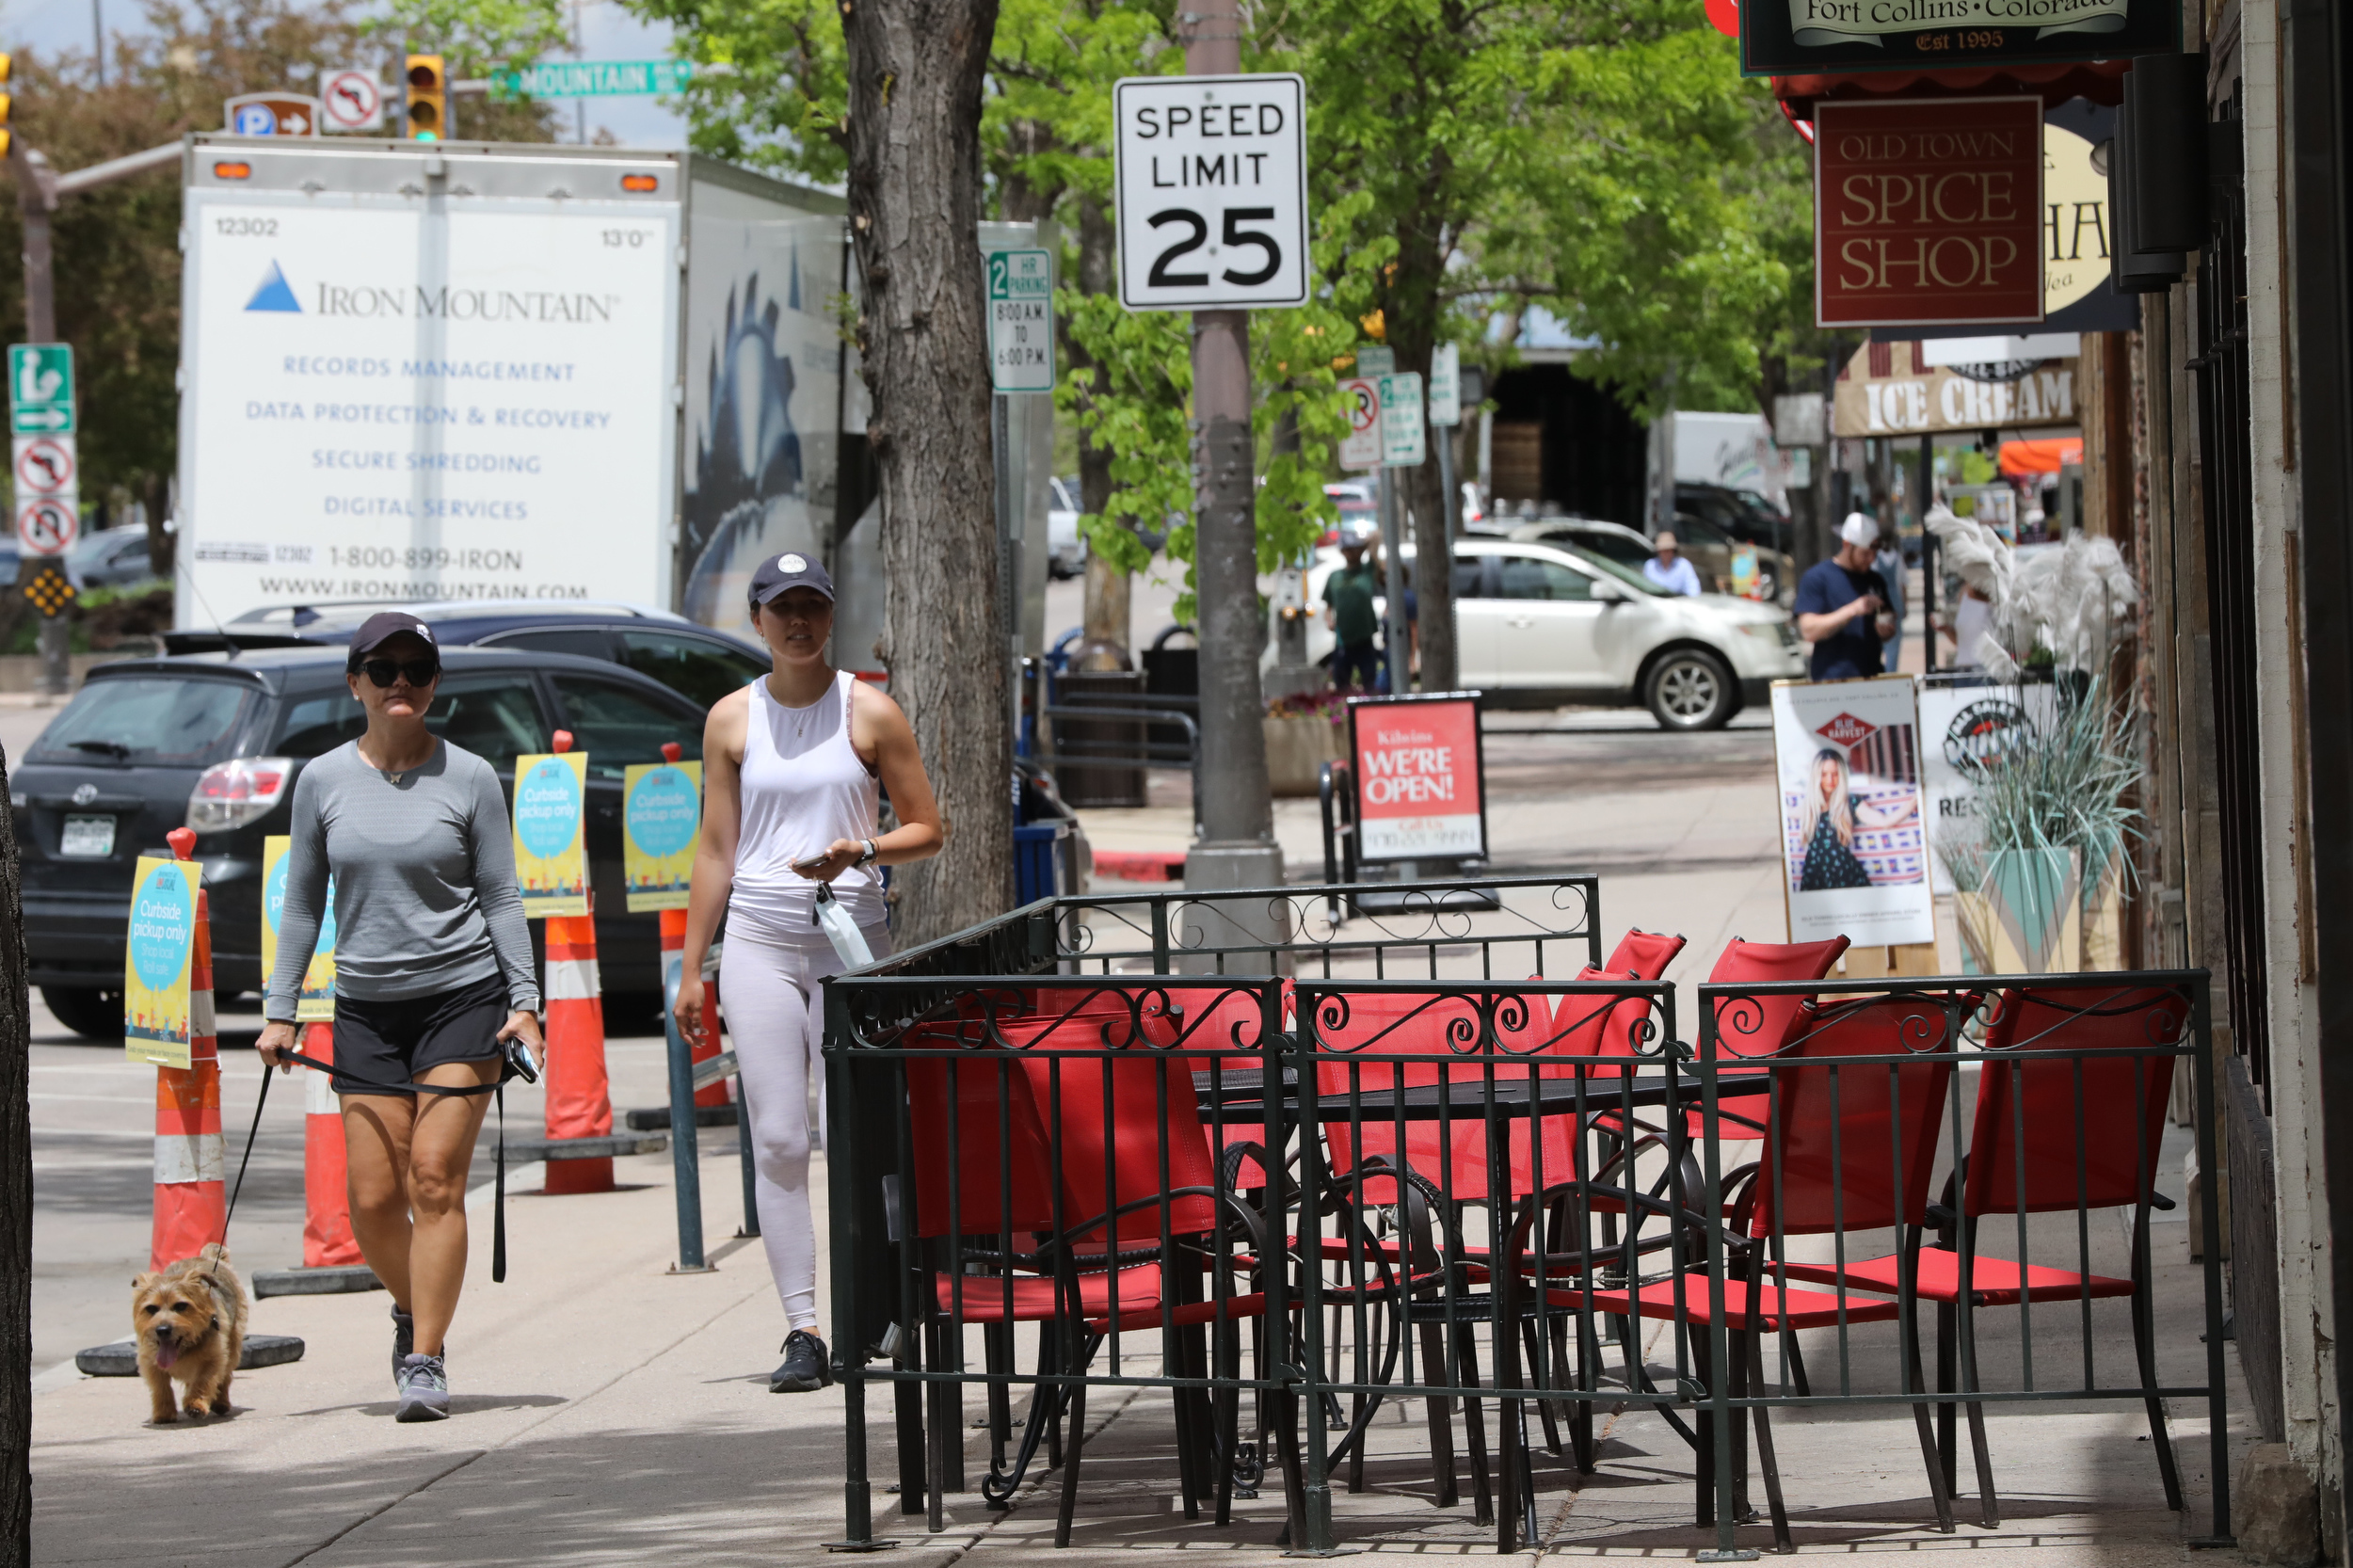 Some Fort Collins Restaurants Begin Reopening For Seated Customers, Masks and Social Distancing In Place